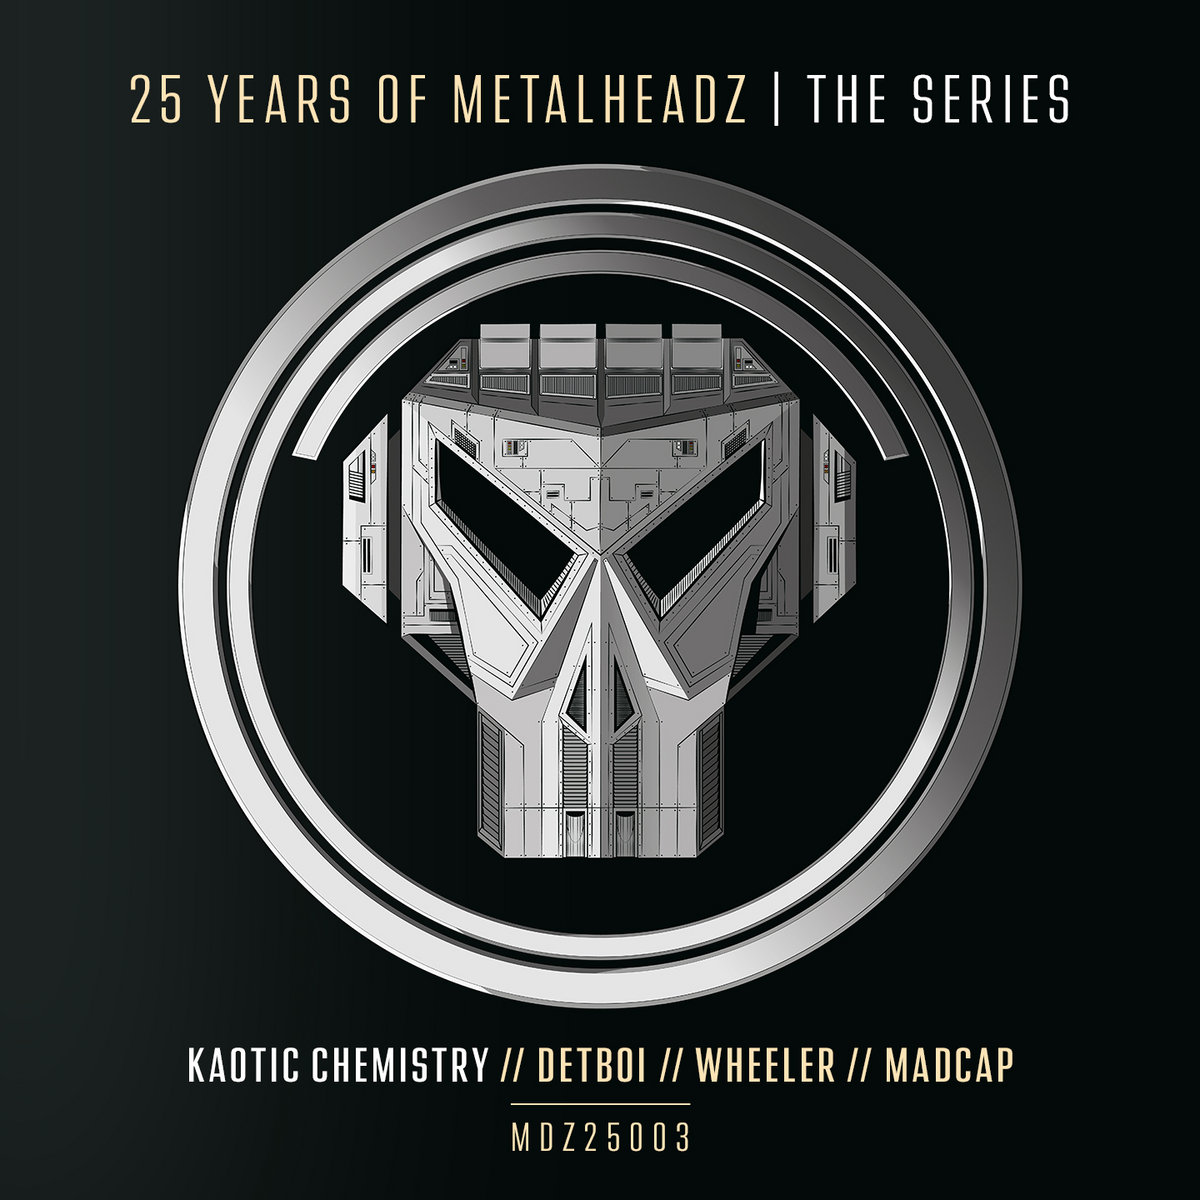 Kaotic Chemistry/25 YEARS METALHEADZ 12""